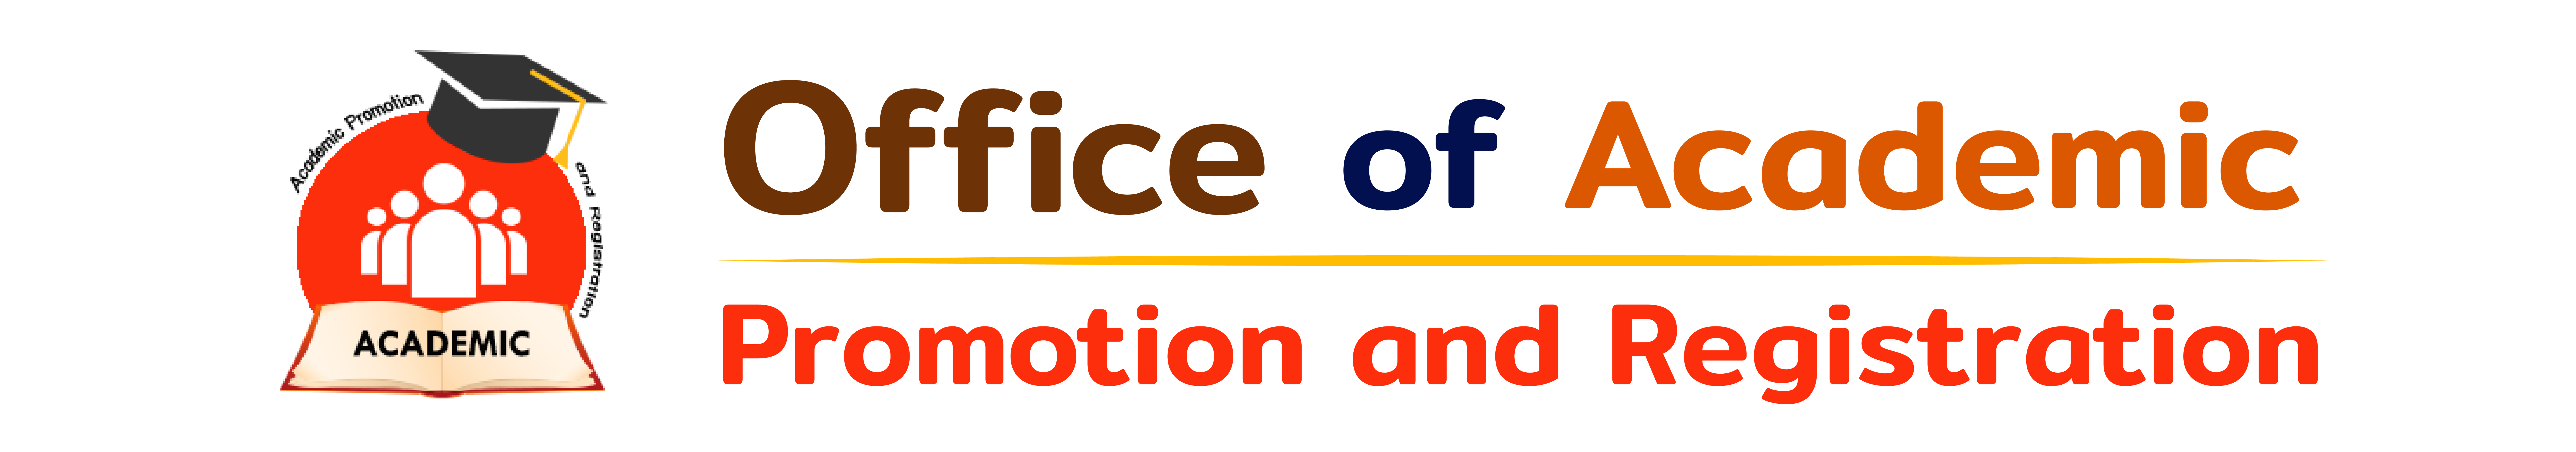 Office of Academic Promotion and Registration